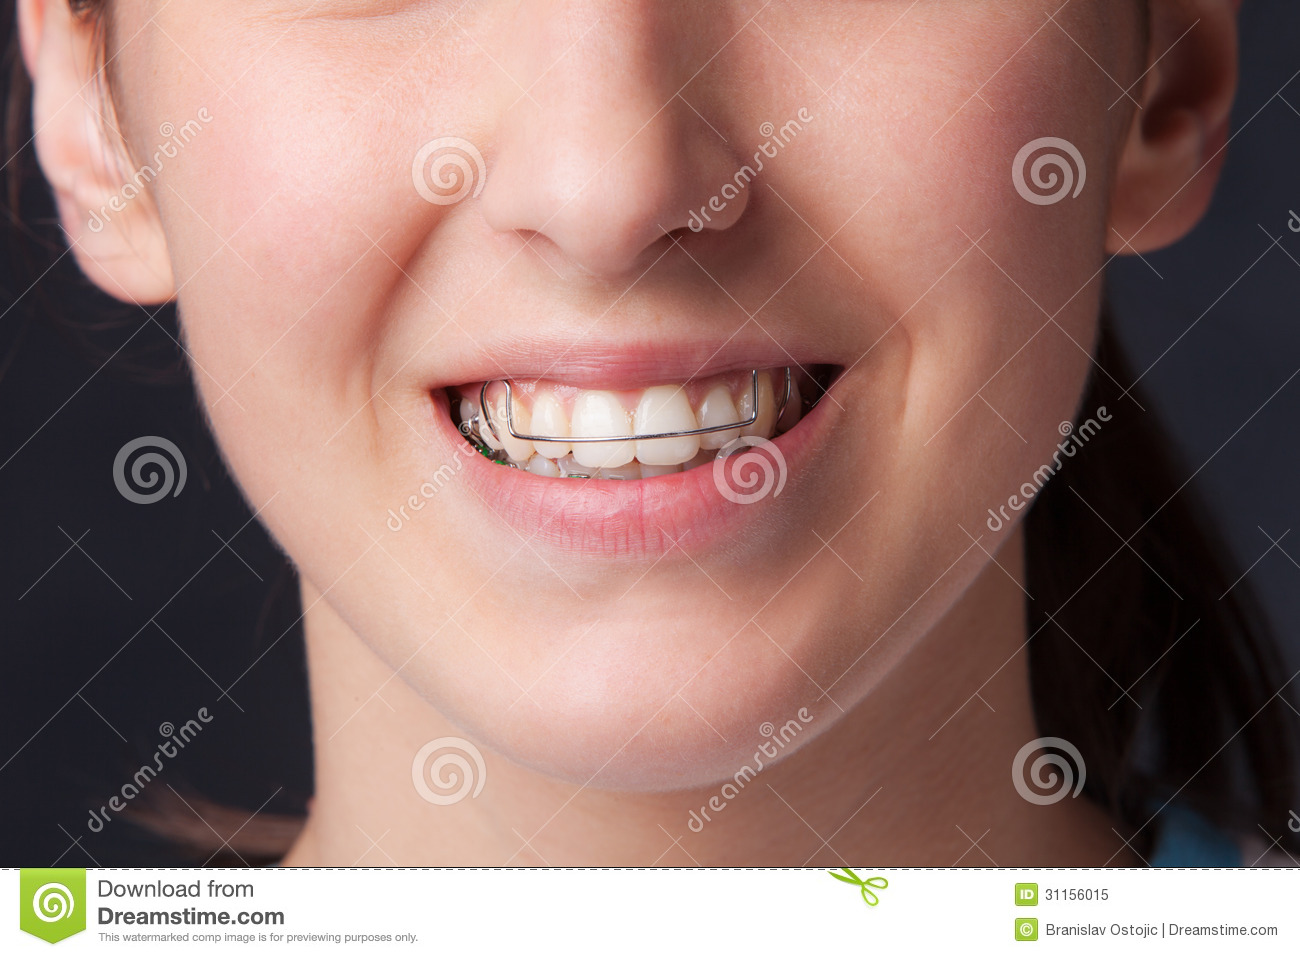 Girls dentures young with Think You